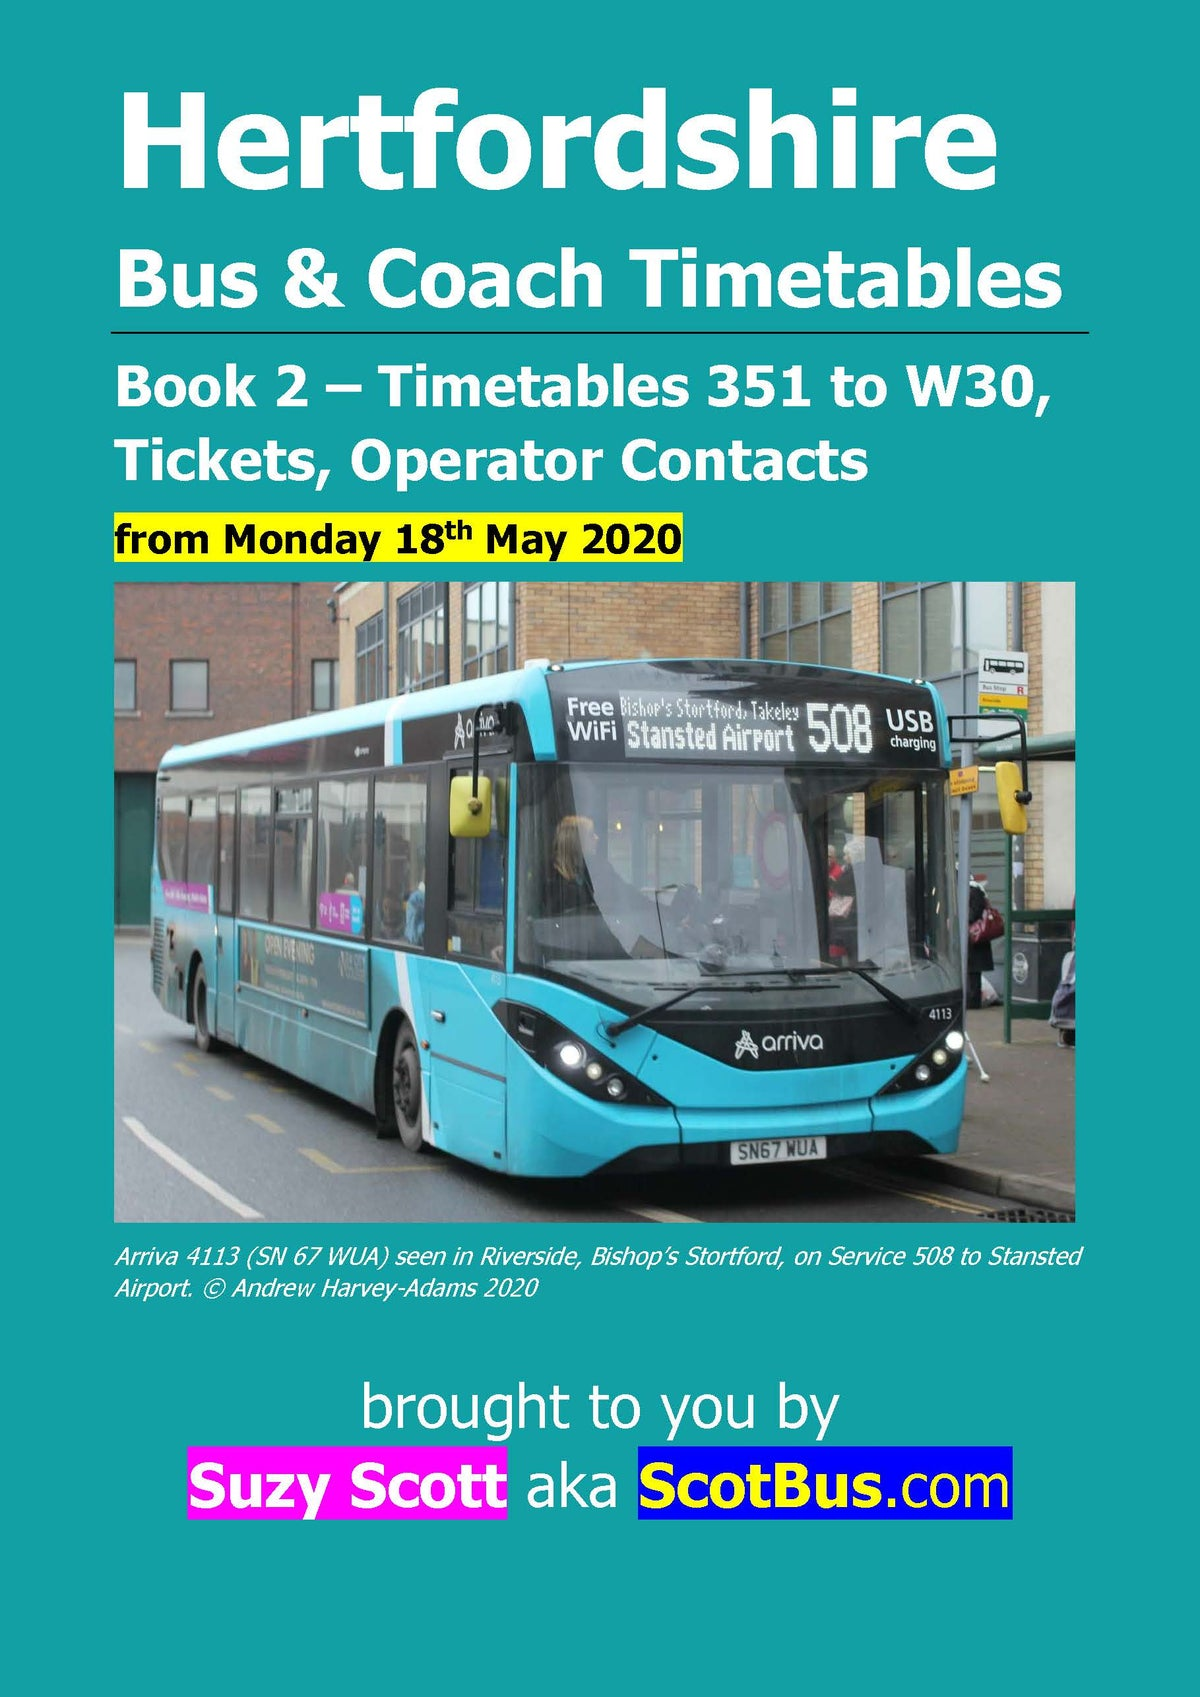 Image of Hertfordshire Bus Timetables, 18th May 2020